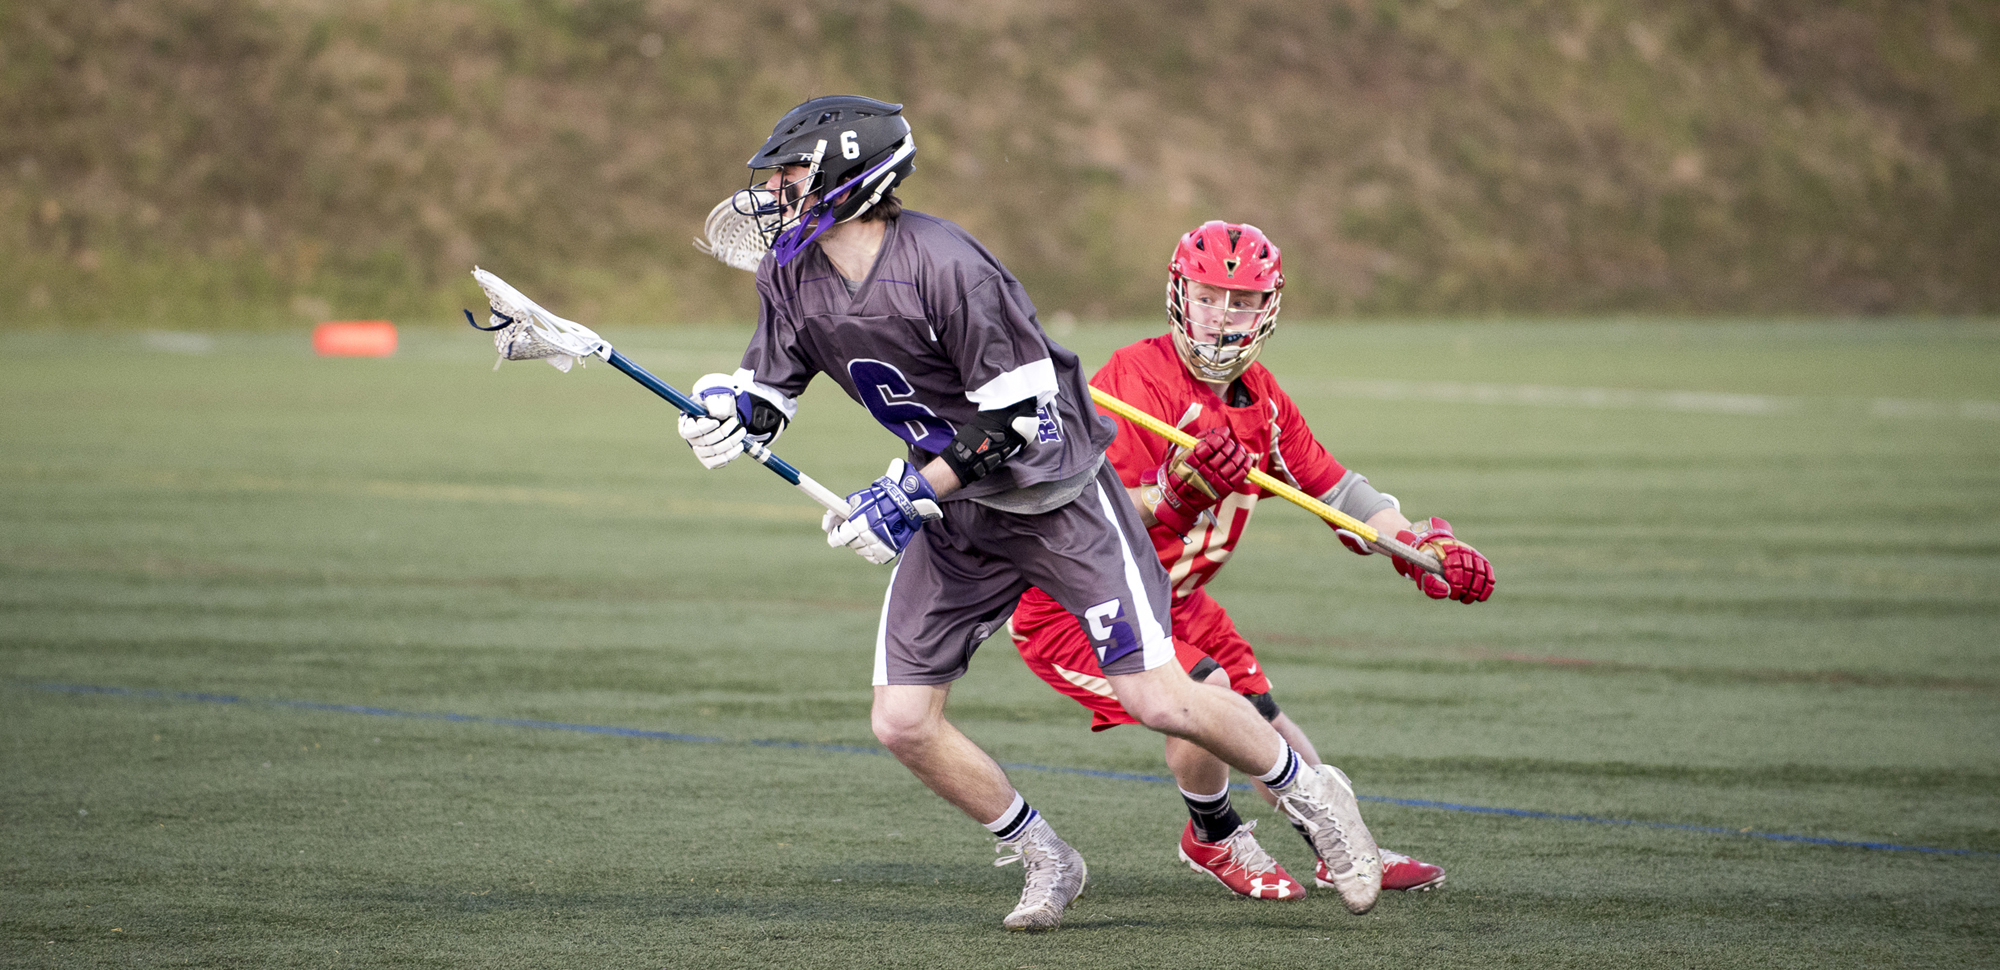 Sophomore attackman Connor Kirkwood had six goals on Saturday, giving him 39 for the season.